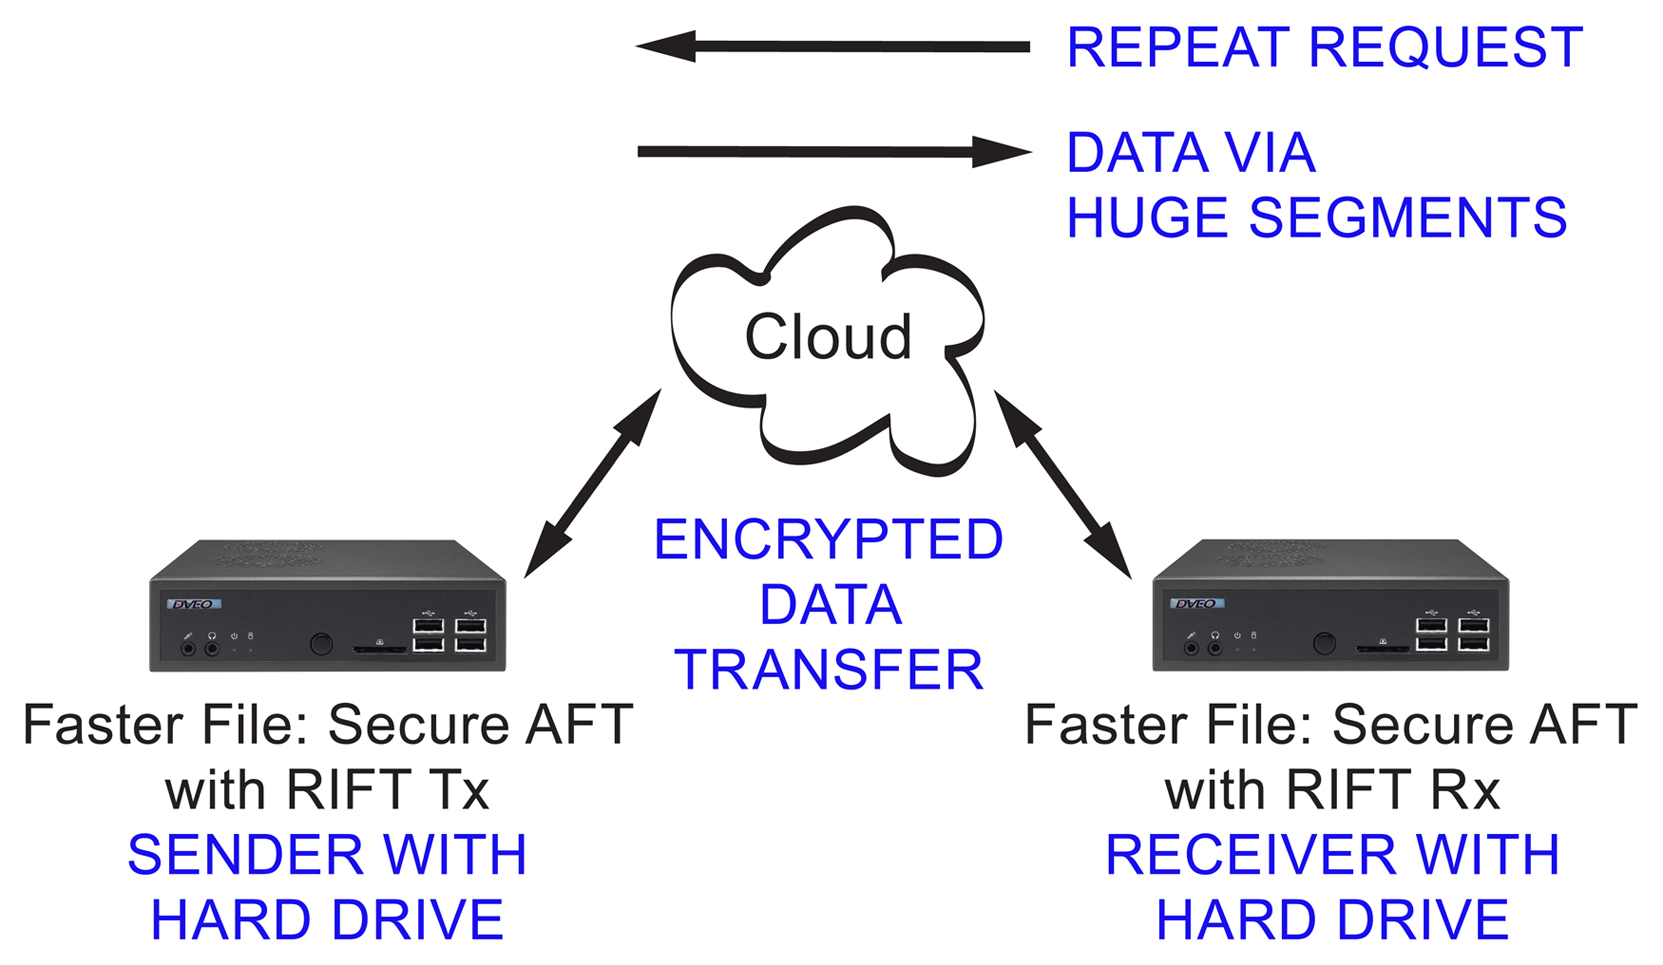 Faster File Secure AFT with RIFT